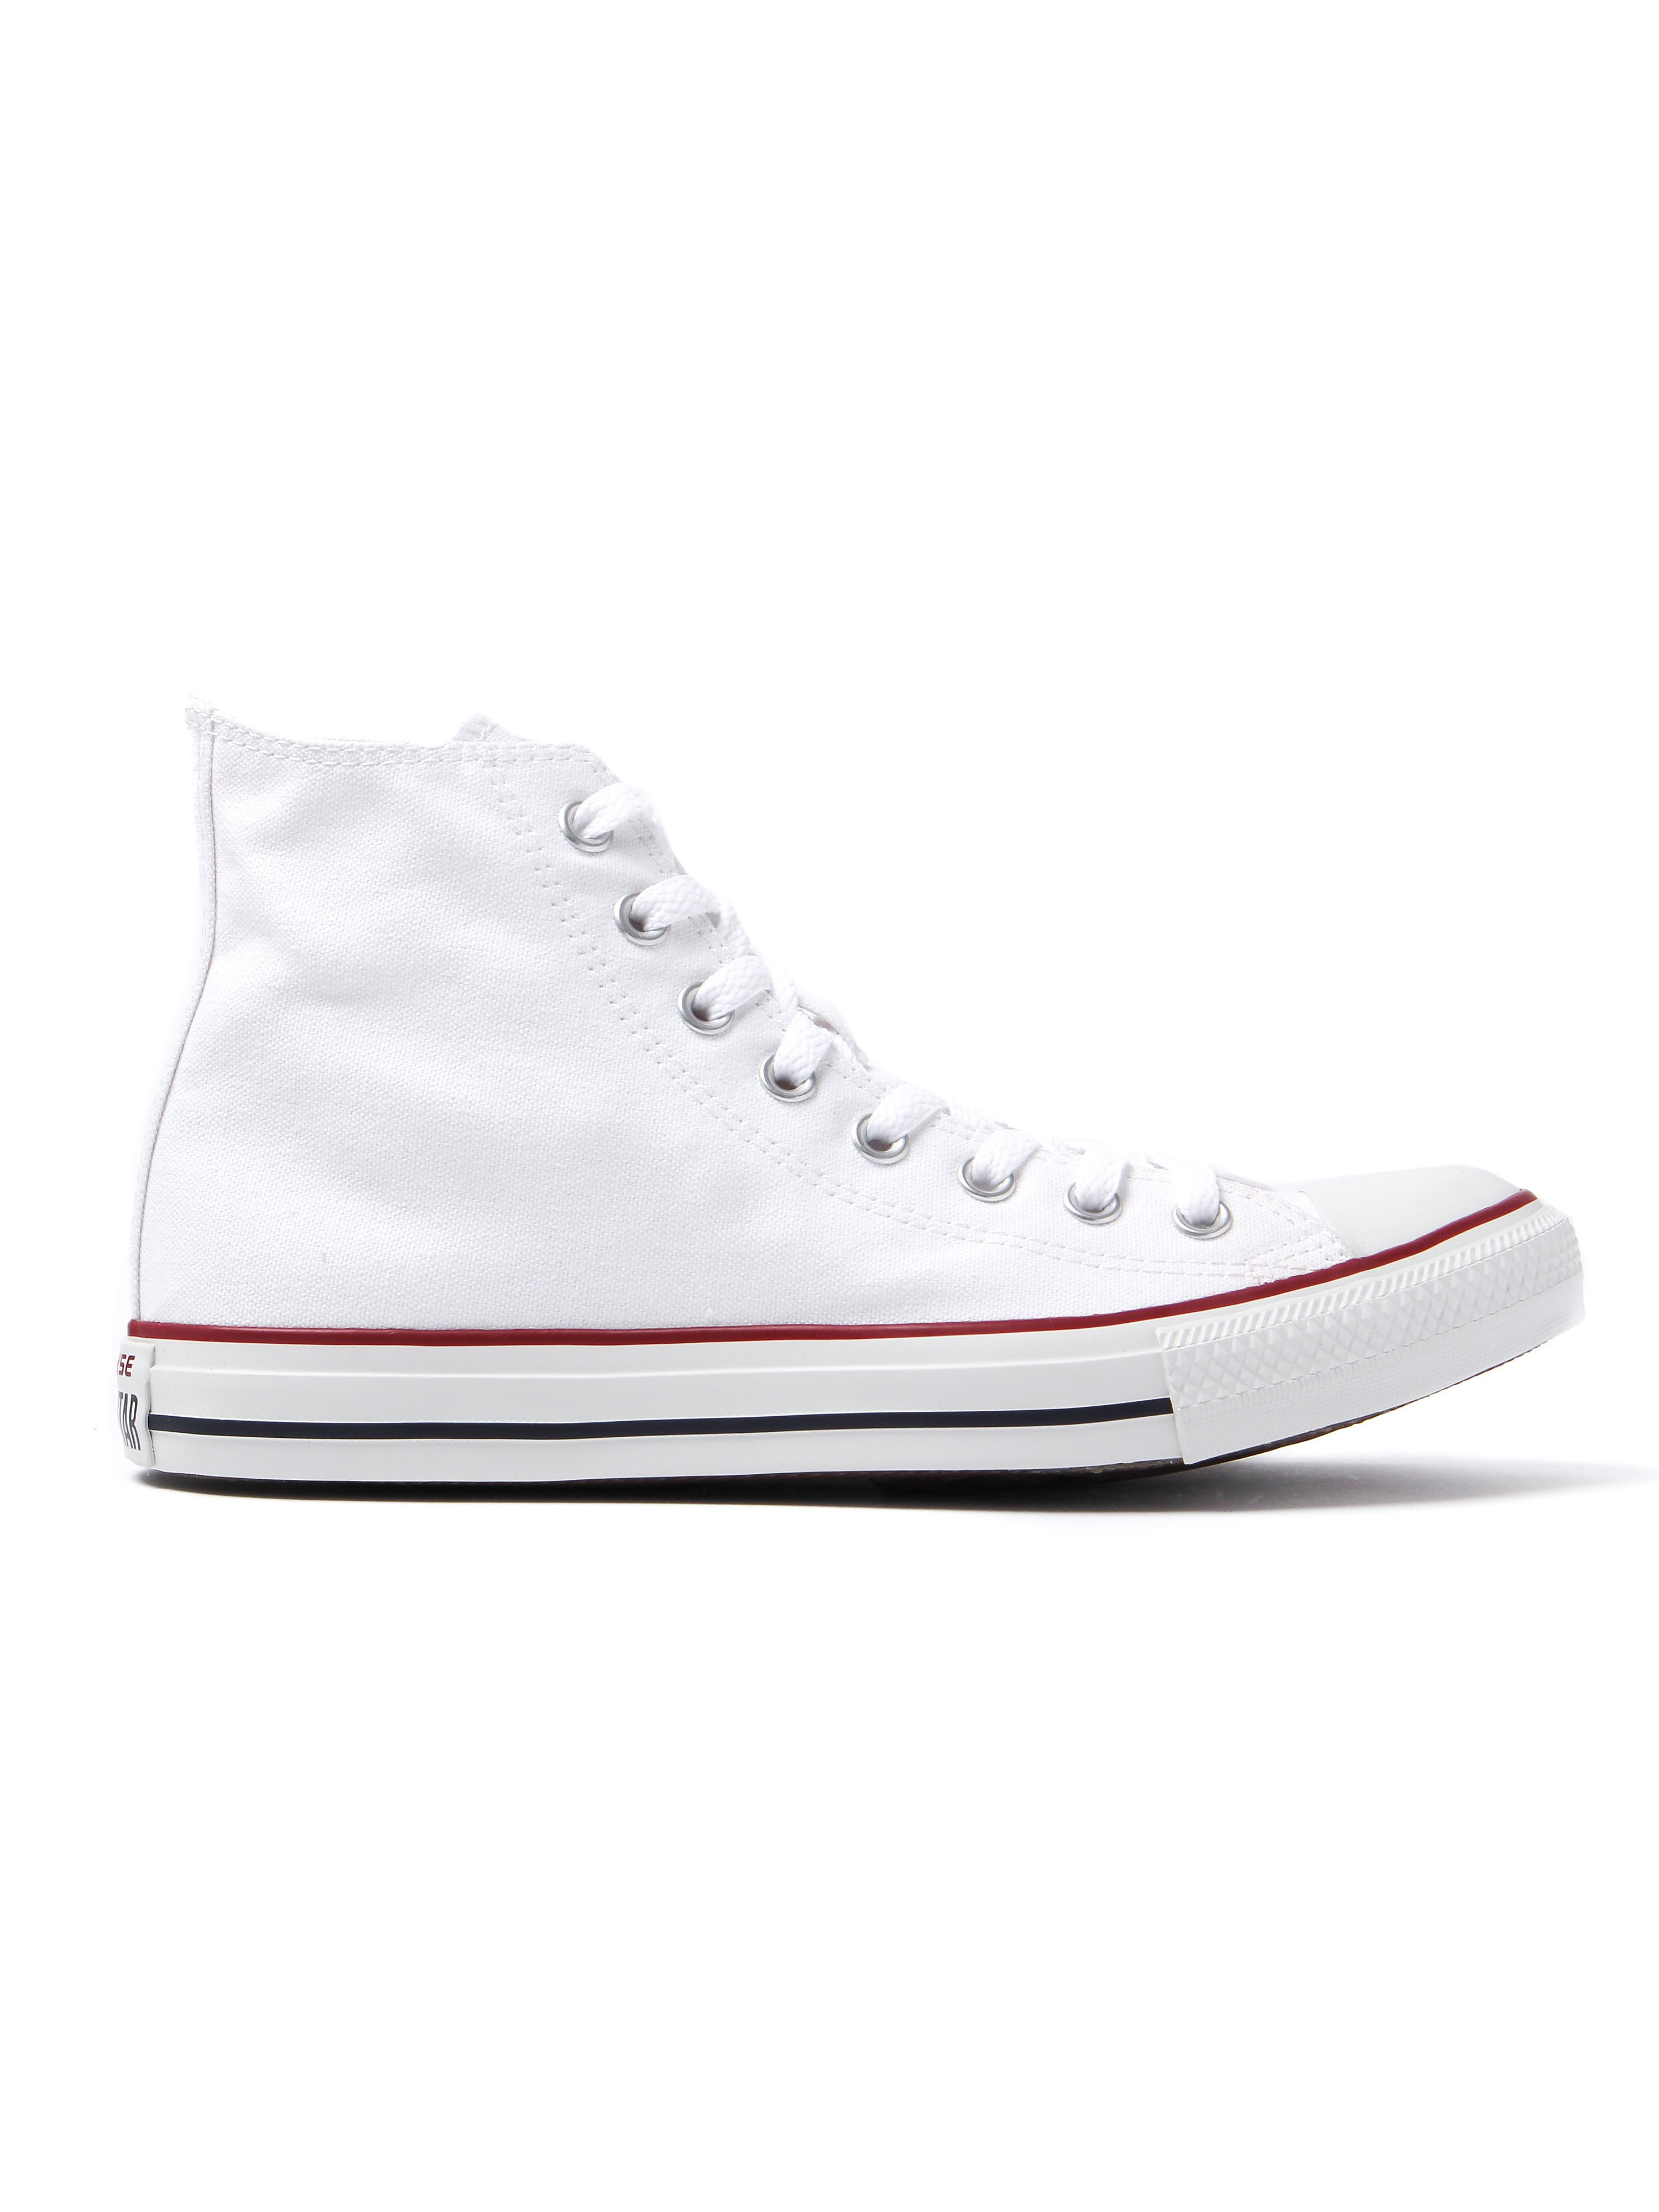 Converse Men's Chuck Taylor All Star HI Trainers - Optical White